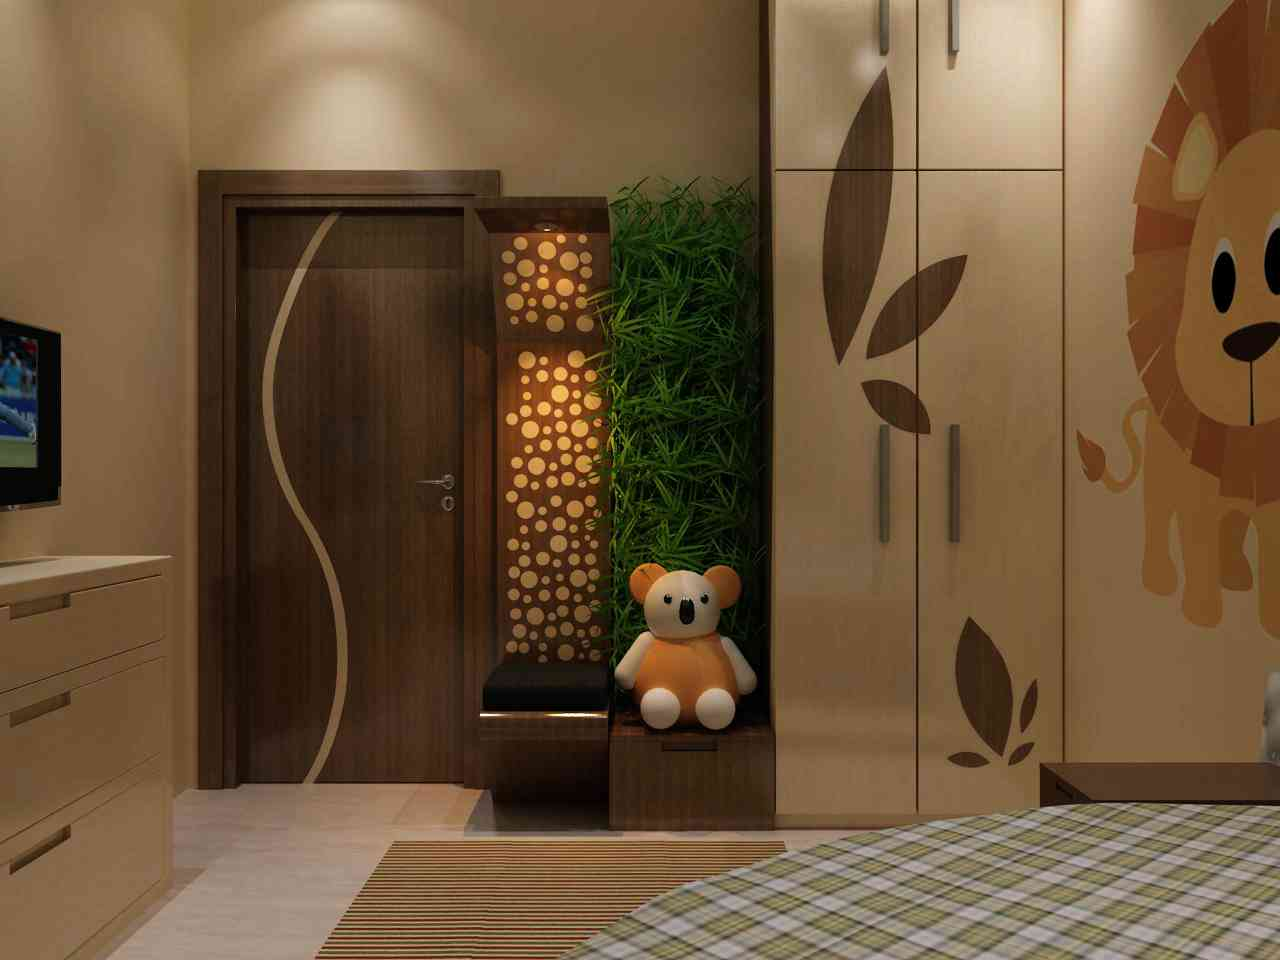 Door Designs for Bedrooms | Indian Bedroom Door Design Ideas